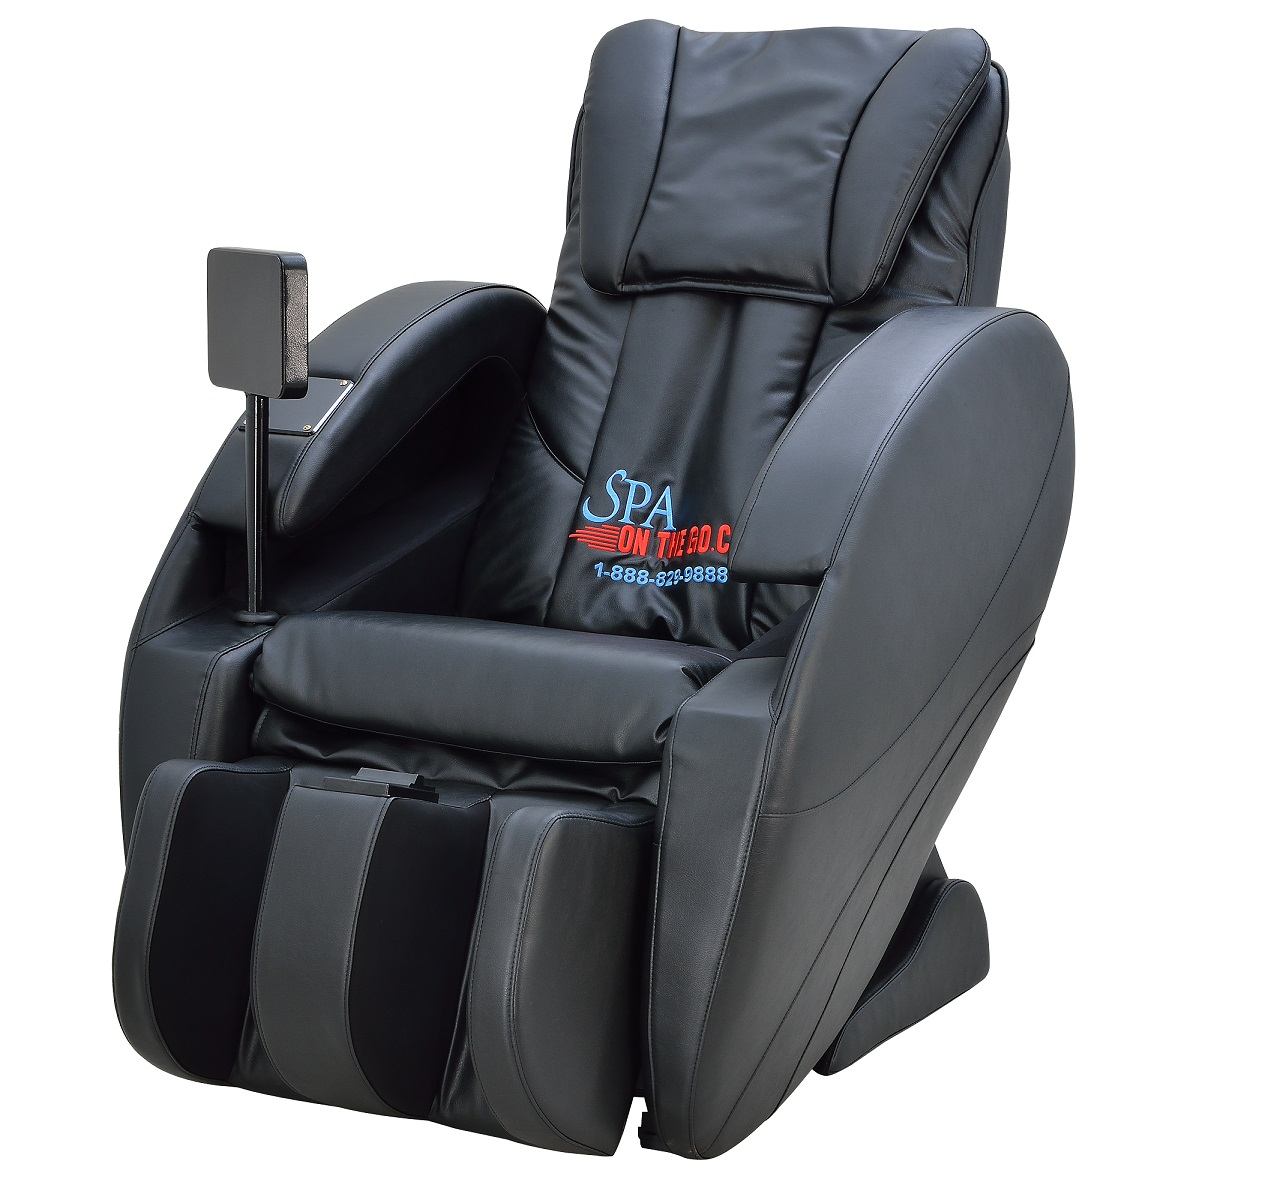 used vending massage chairs for sale chair teenage bedroom luxury liner